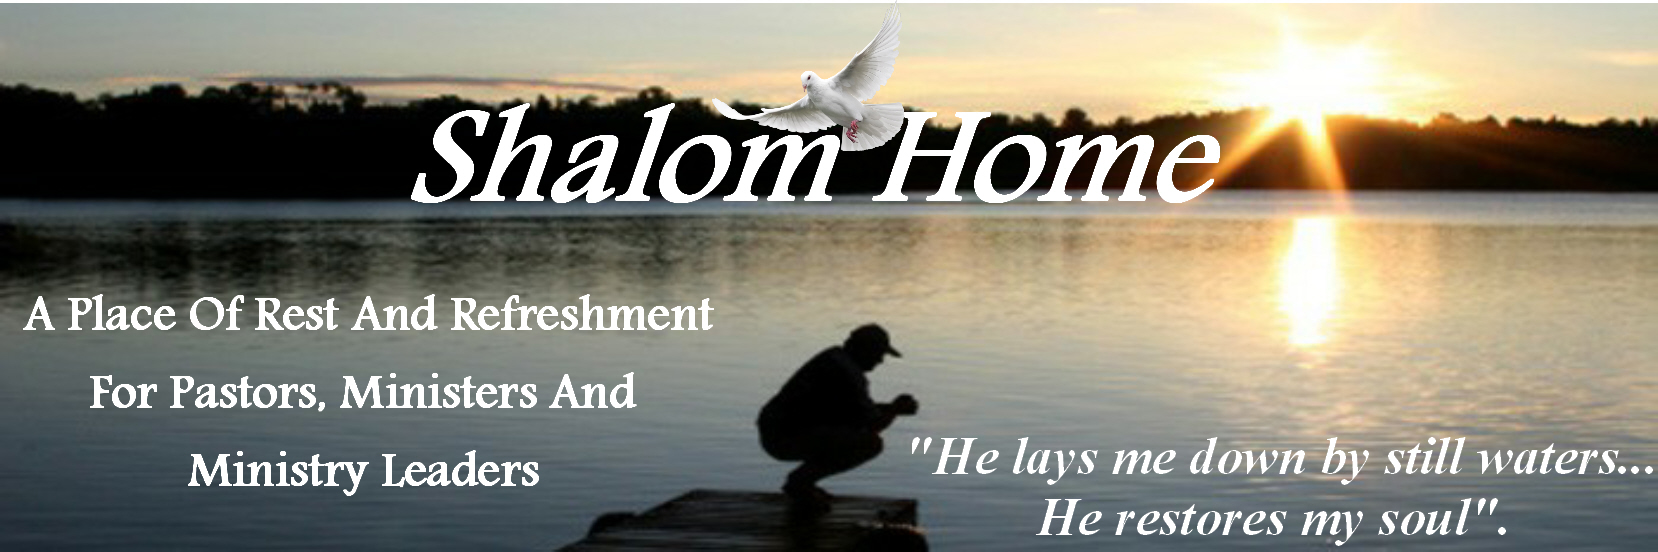 Pastor's Retreat for Rest and Refreshment - Shalom Home